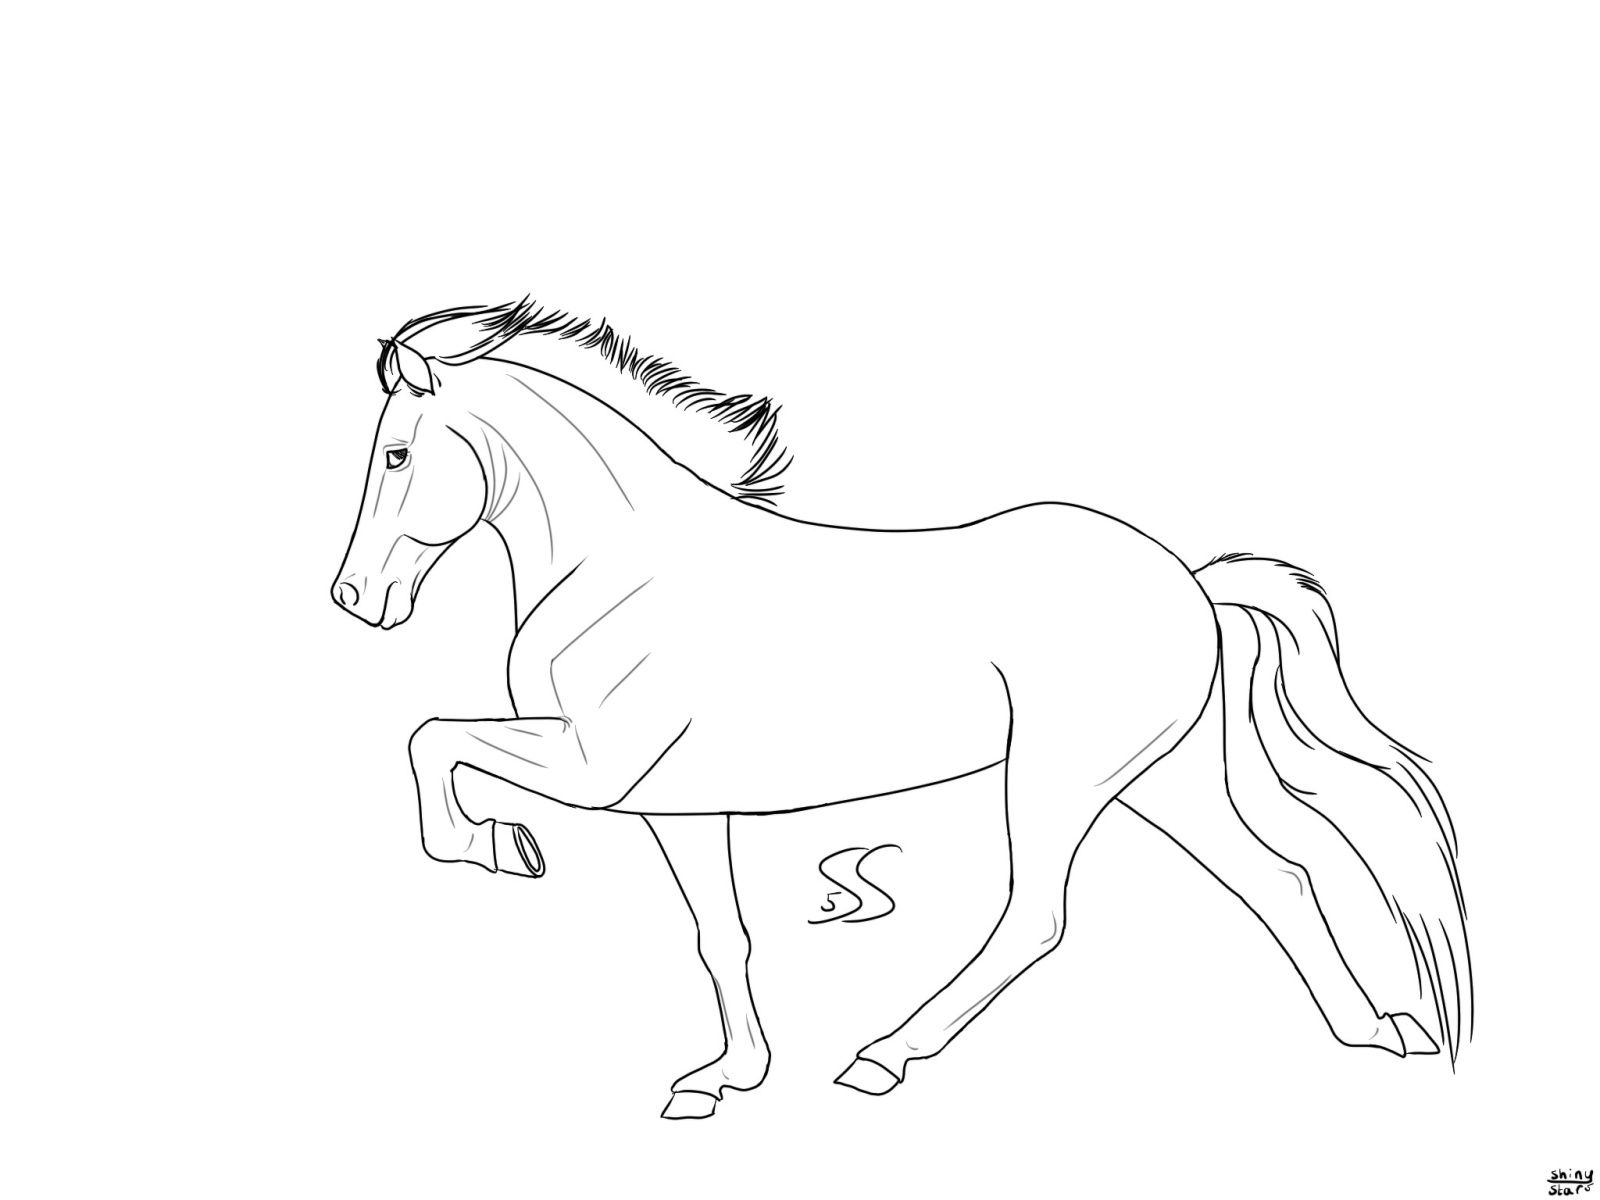 Horse Coloring Page Animal Coloring Collection Of Animal Coloring Pages For Teenage Printable That You Can Horse Coloring Pages Coloring Pages Horse Coloring [ 1237 x 1759 Pixel ]